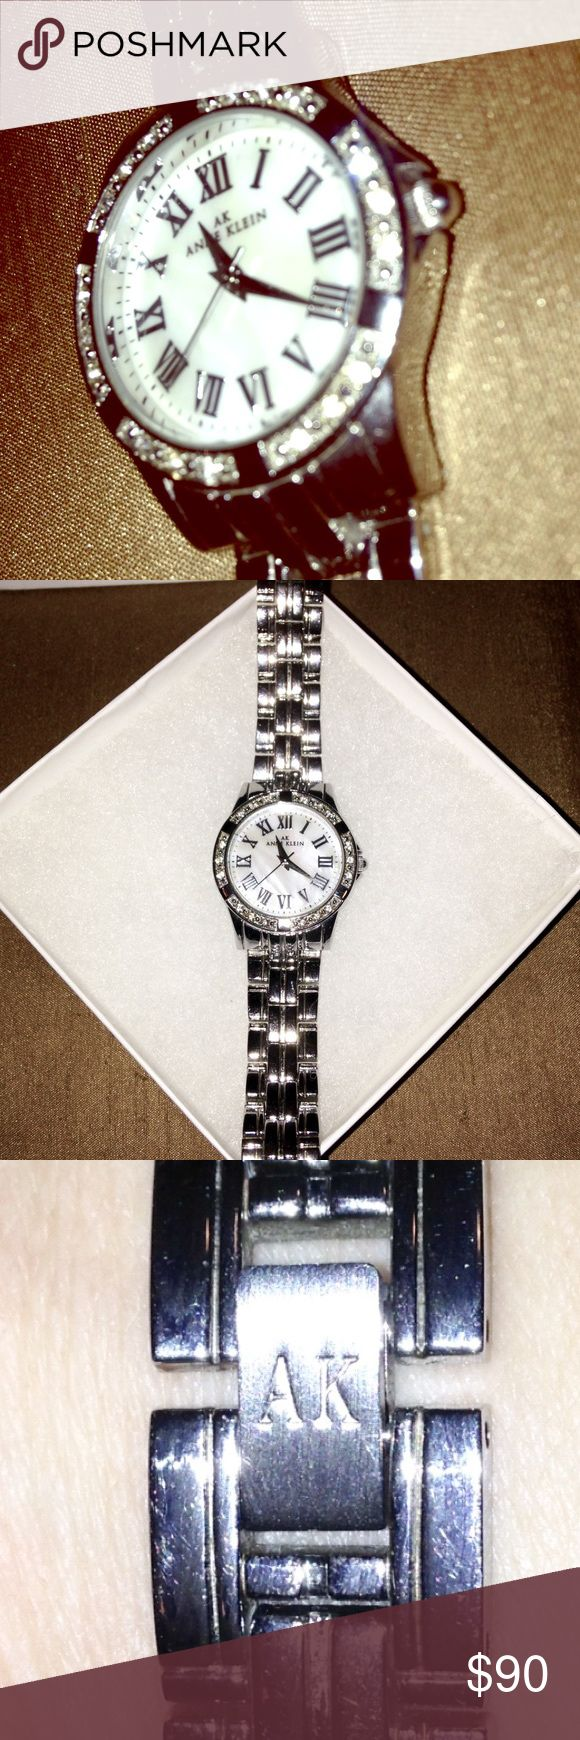 Anne Klein Swarovski Crystal Accented Womens Watch Anne Klein Swarovski Crystal Accented Silver Tone Women's Watch ⌚️ • Opal face w/ a Stainless Steel back • Gorgeous Crystals surrounding the face of the Watch • A Timeless piece  Just needs a new battery! ✨GREAT CONDITION✨ Anne Klein Accessories Watches